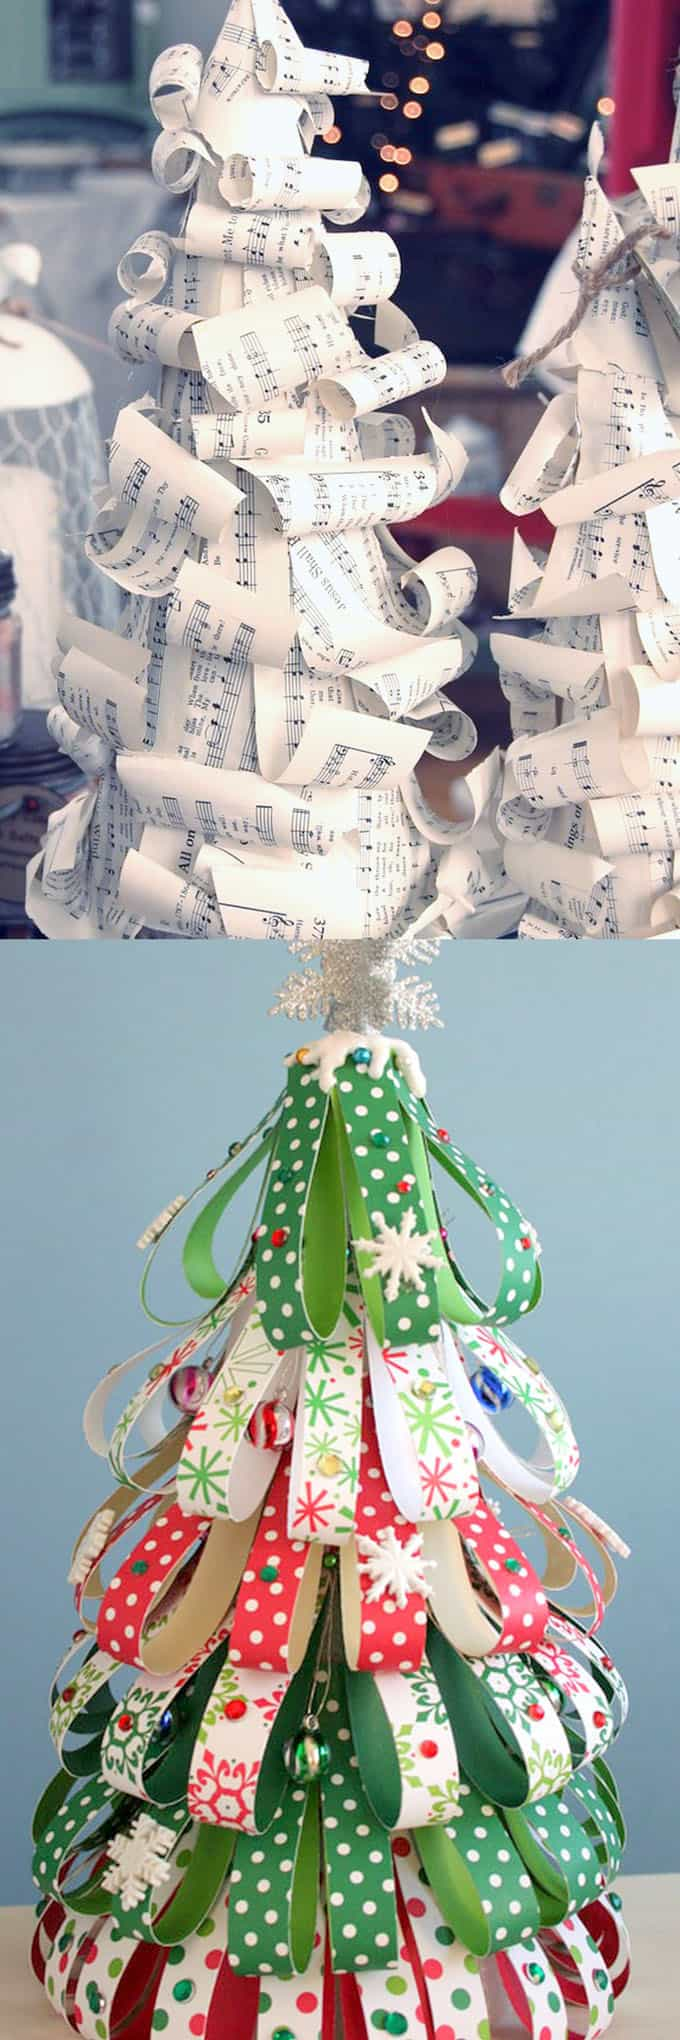 Paper is one of the easiest materials to craft with! Old book pages, sheet music , scrapbook paper, and even old magazines can be transformed into DIY ...